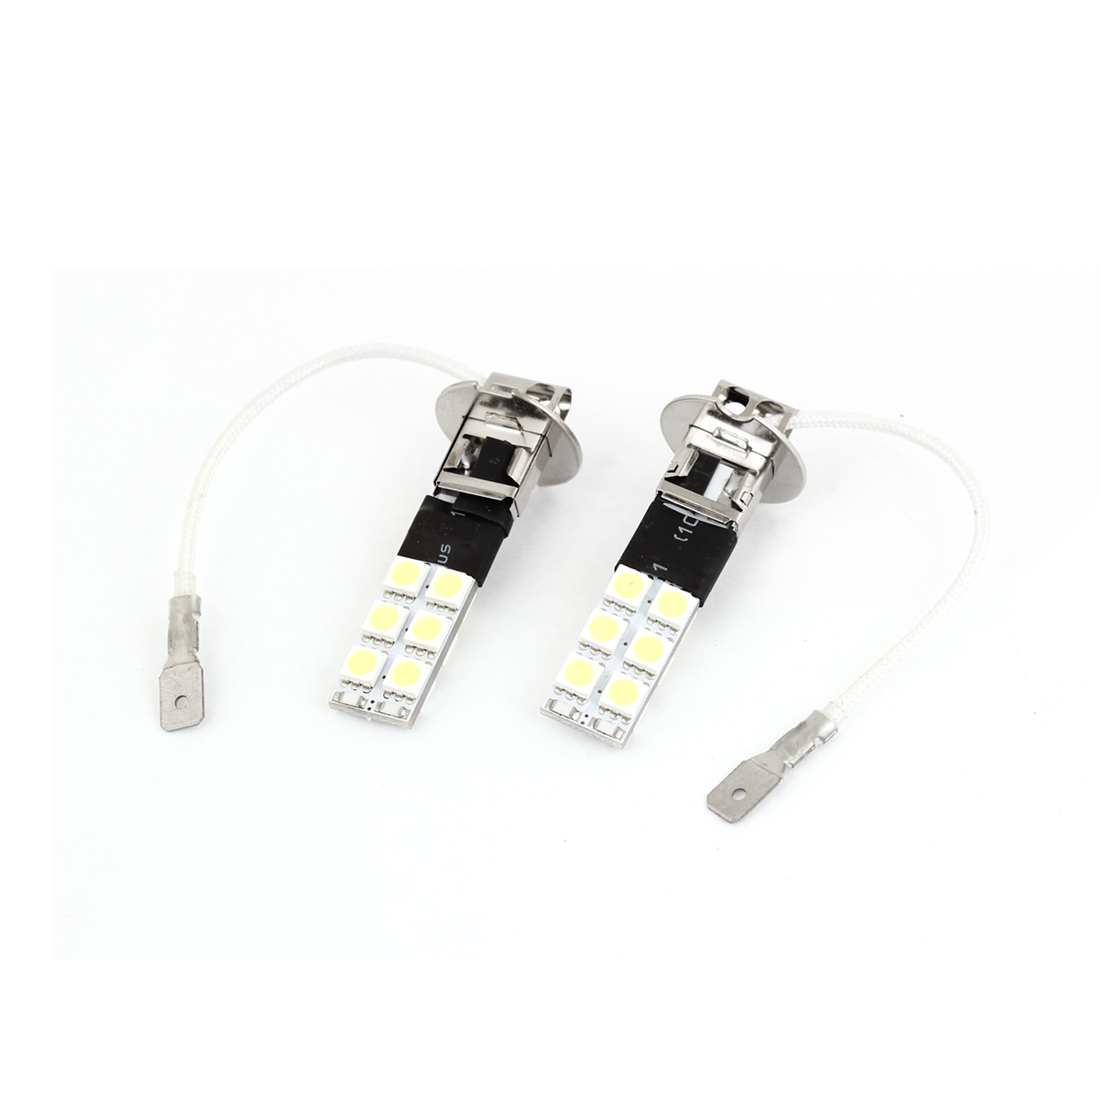 2 Pcs H3 12 White 5050 SMD LED Automotive Car Flash Fog Light